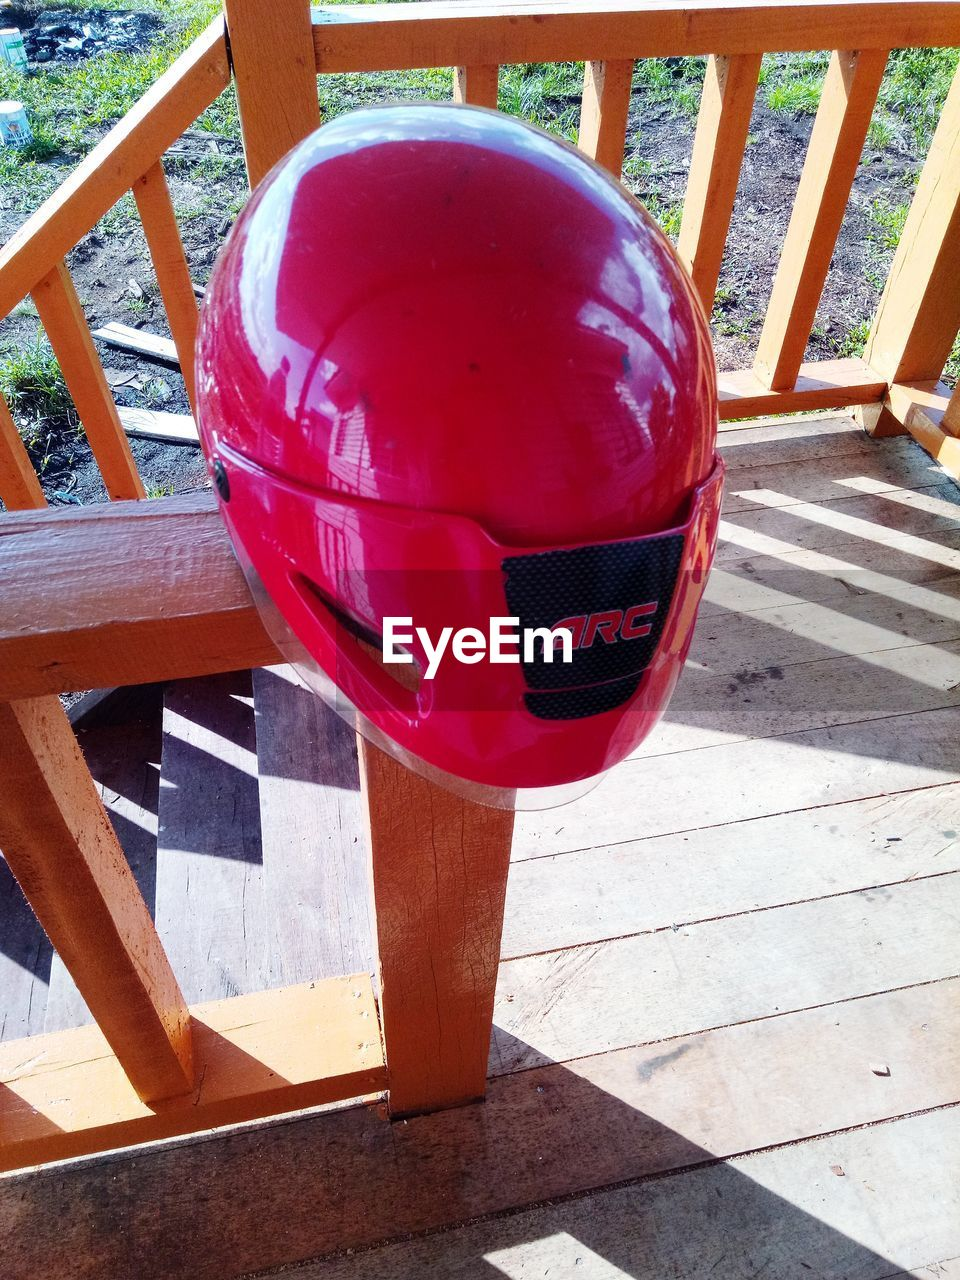 day, sunlight, no people, red, outdoors, wood - material, nature, close-up, communication, text, architecture, shadow, seat, railing, ball, safety, security, water, sphere, protection